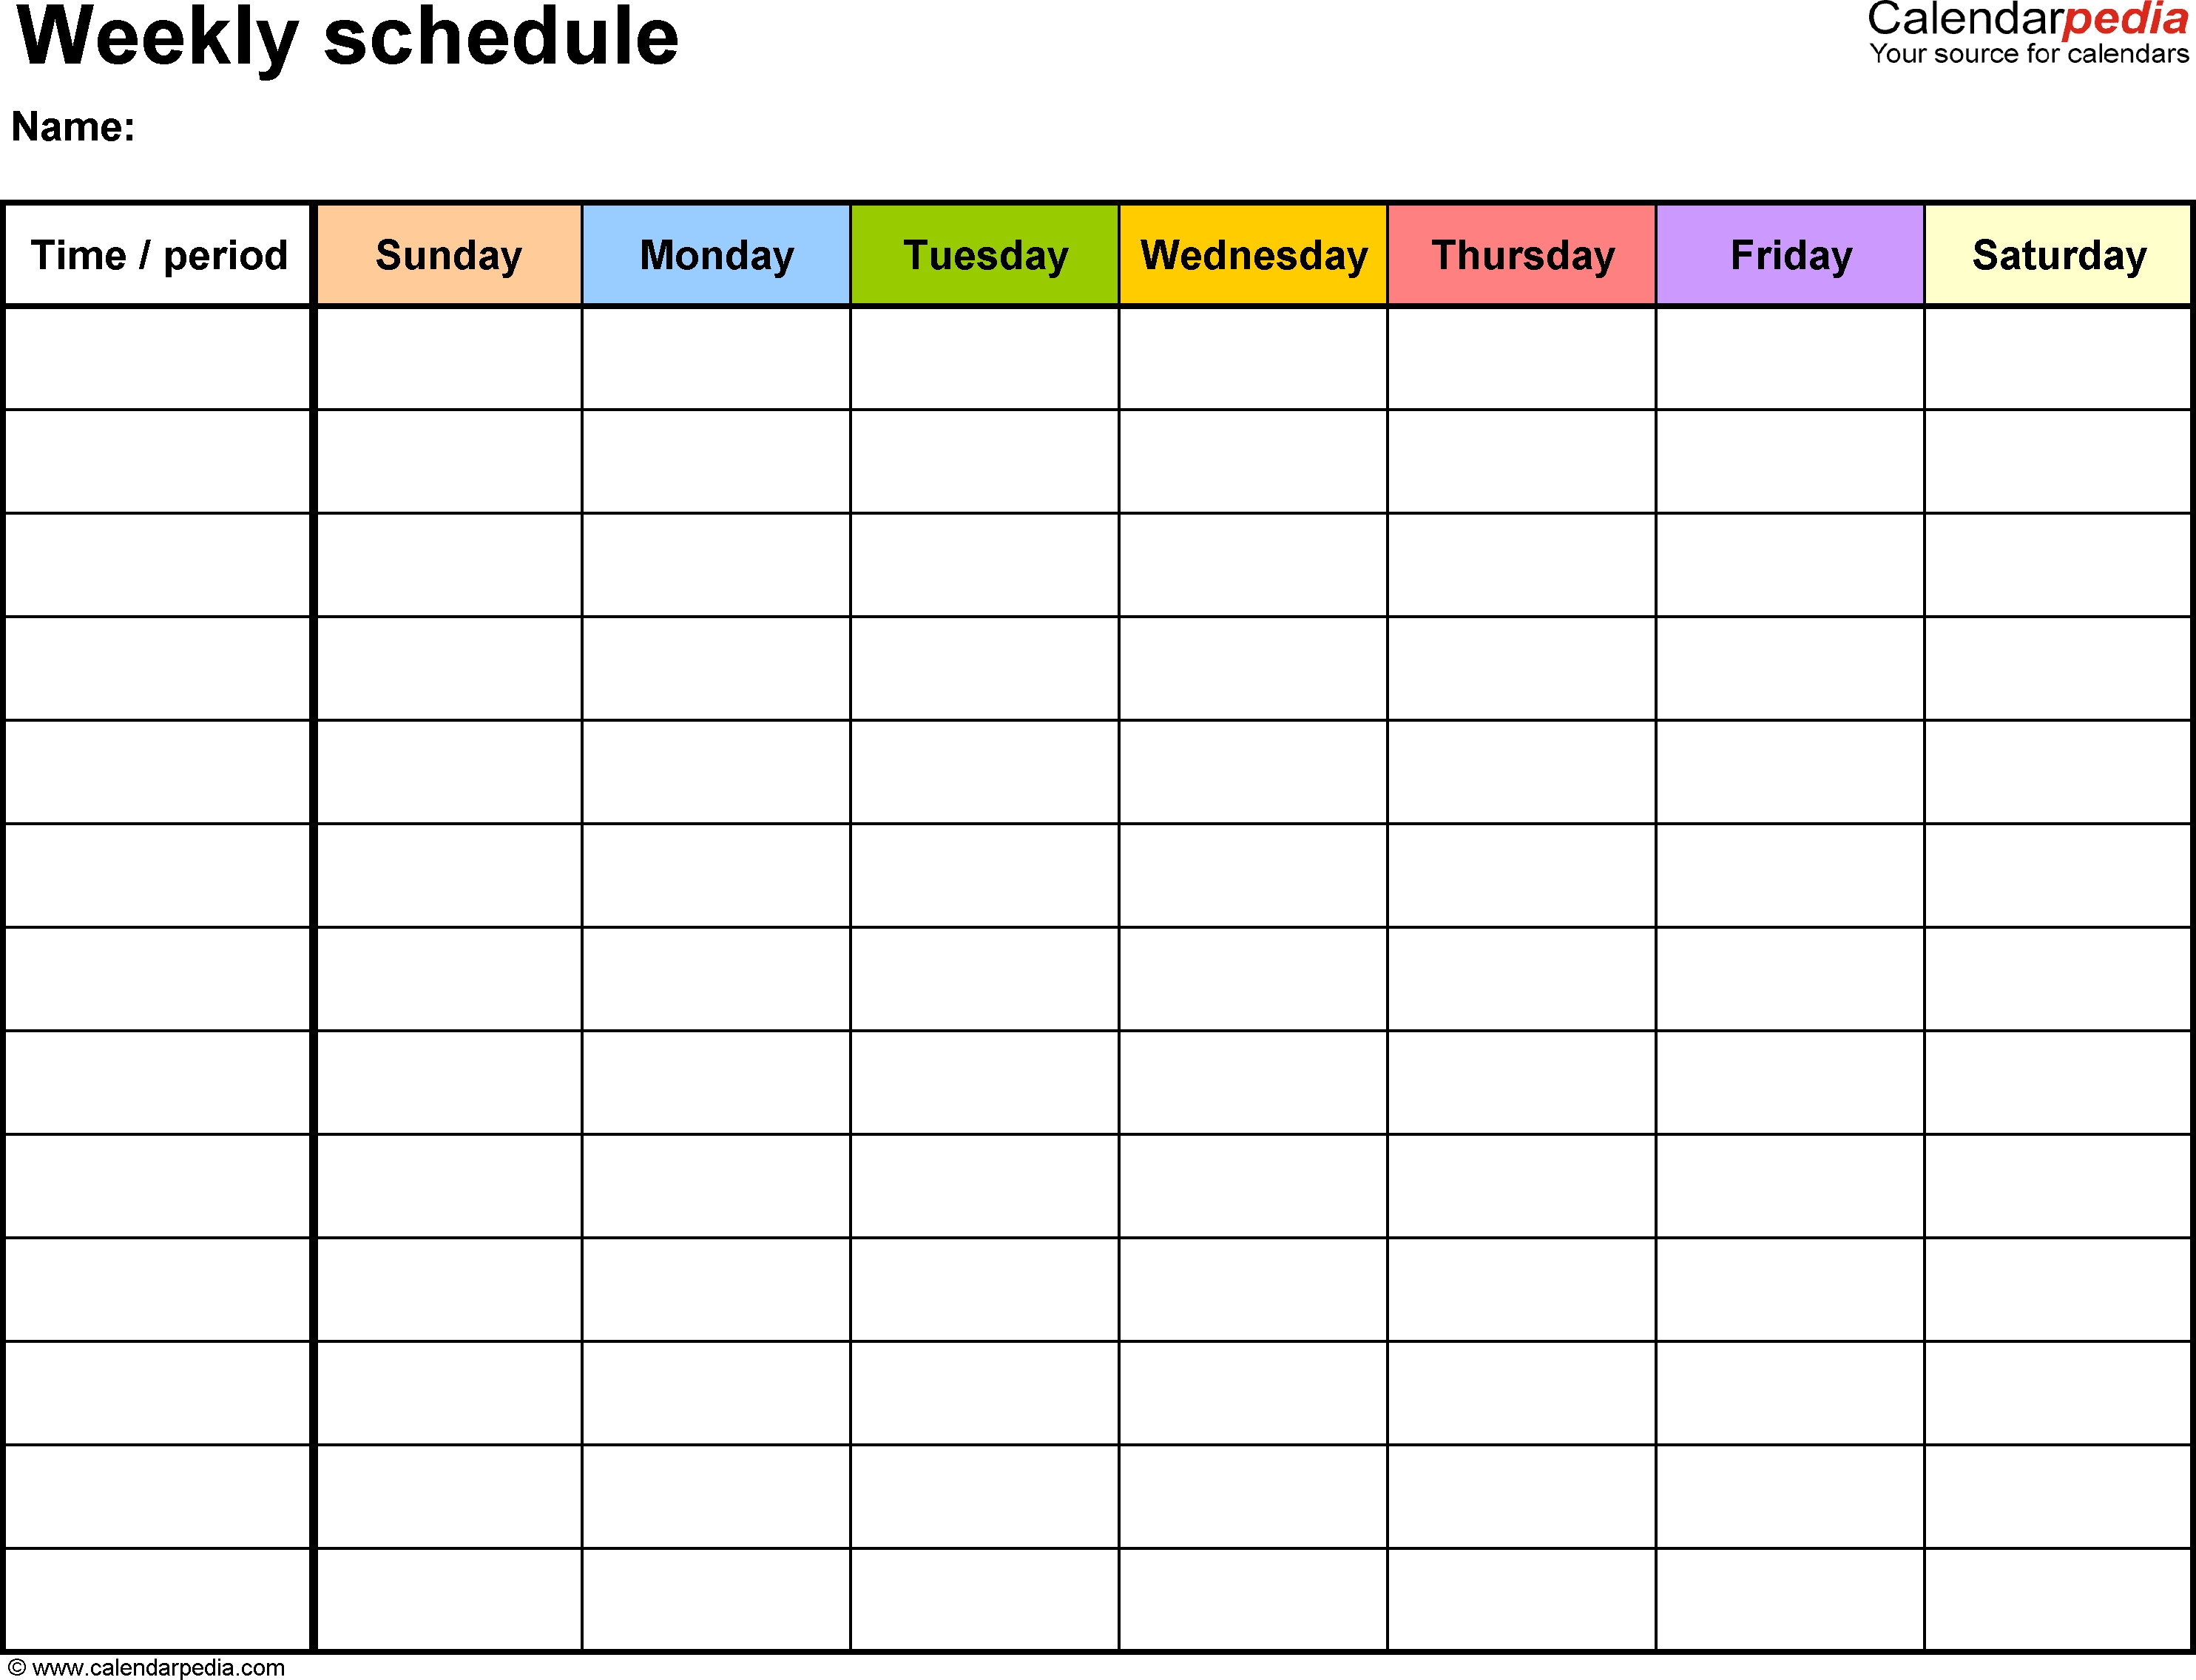 Free Weekly Schedule Templates For Excel - 18 Templates  Printable Daily Calendar Without Time Slots